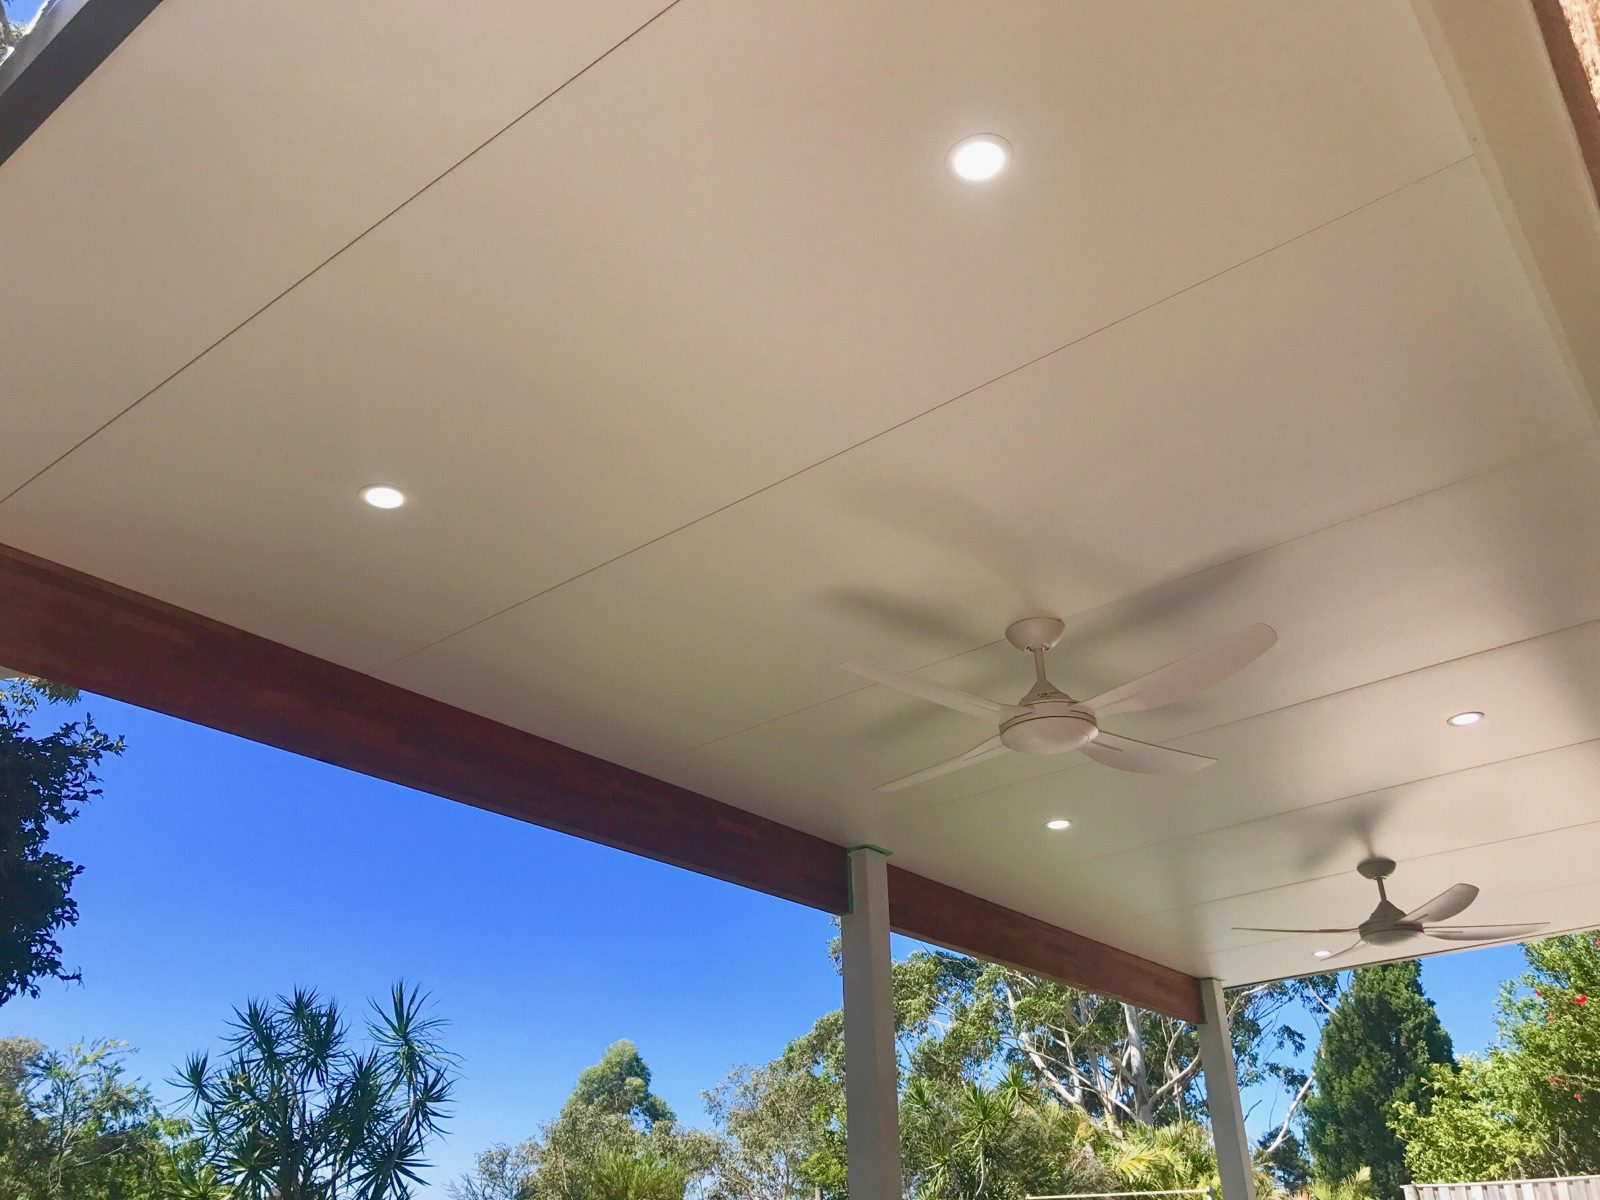 Flat Insulated Roof Pergola Macarthur - NHIC - Call 4647 8111 For A Free Quote